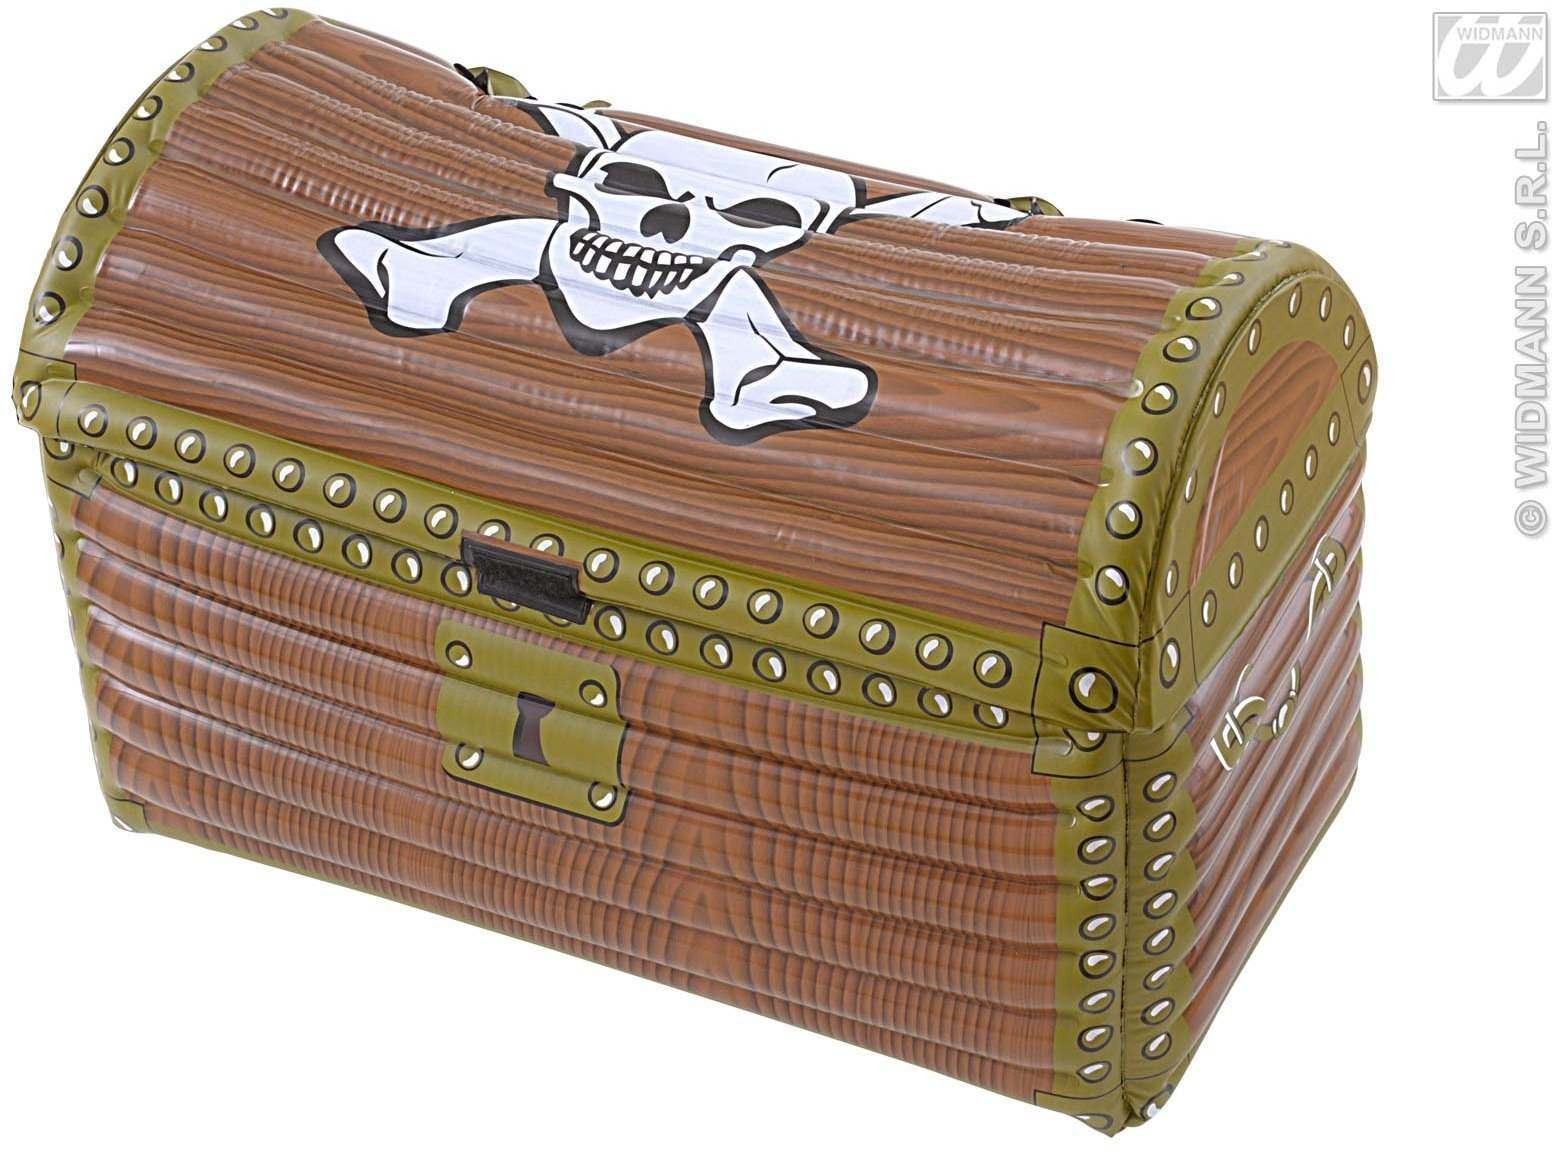 Infl Treasure Chest Coolers 60X30X30Cm - Fancy Dress